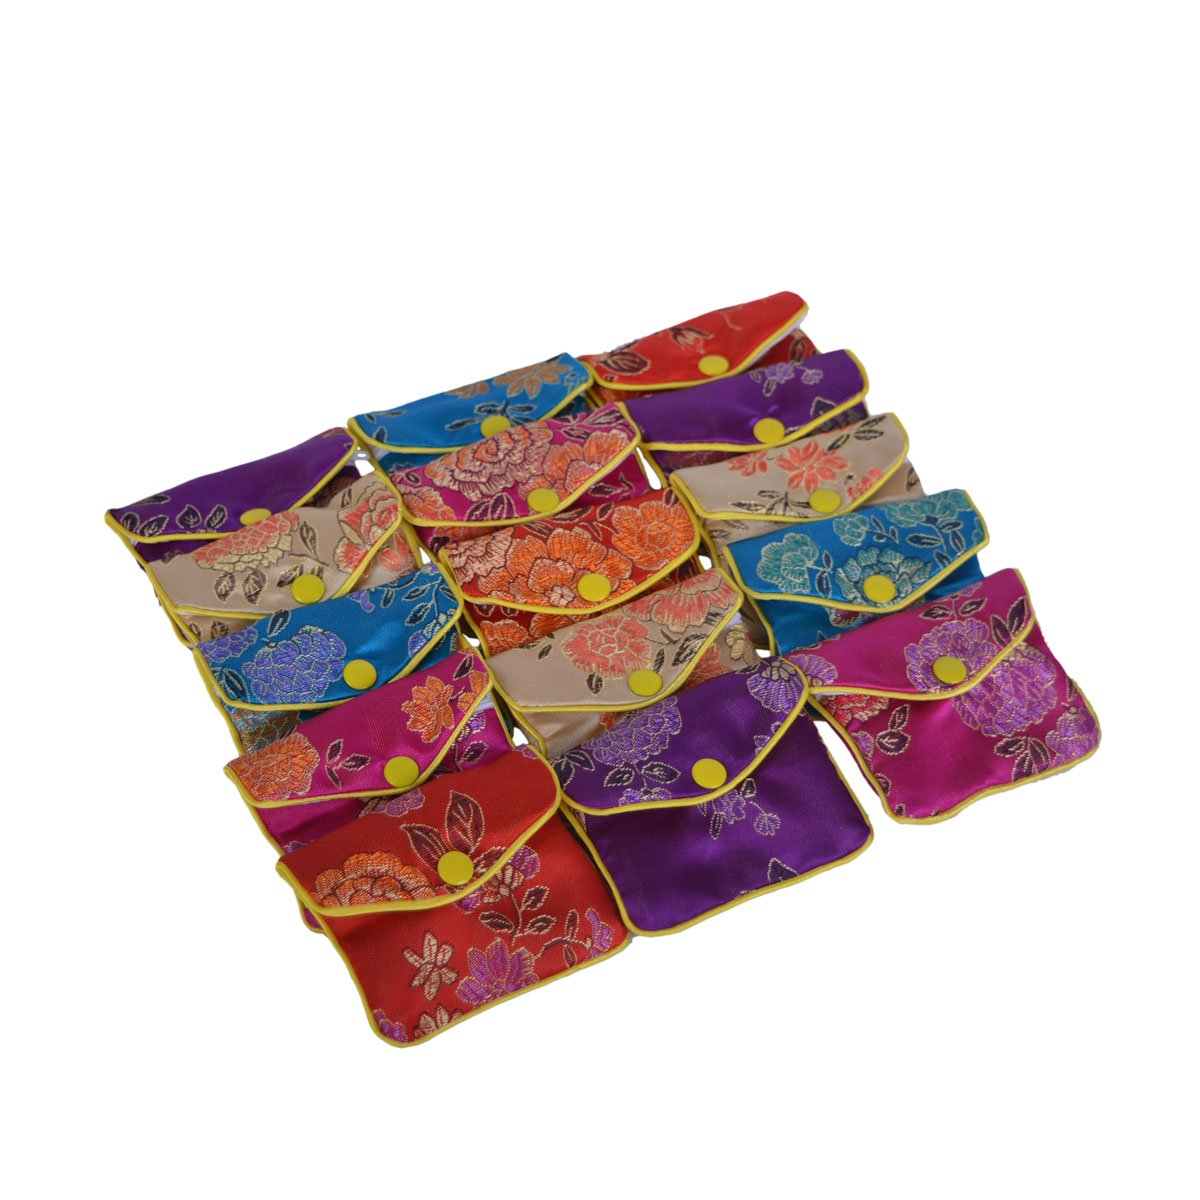 Baitaihem 15 Pack Jewelry Purse Pouch Gift Bags Chinese Silk Style Brocade Embroidered Bag,Multiple Colors(Small) MJ002